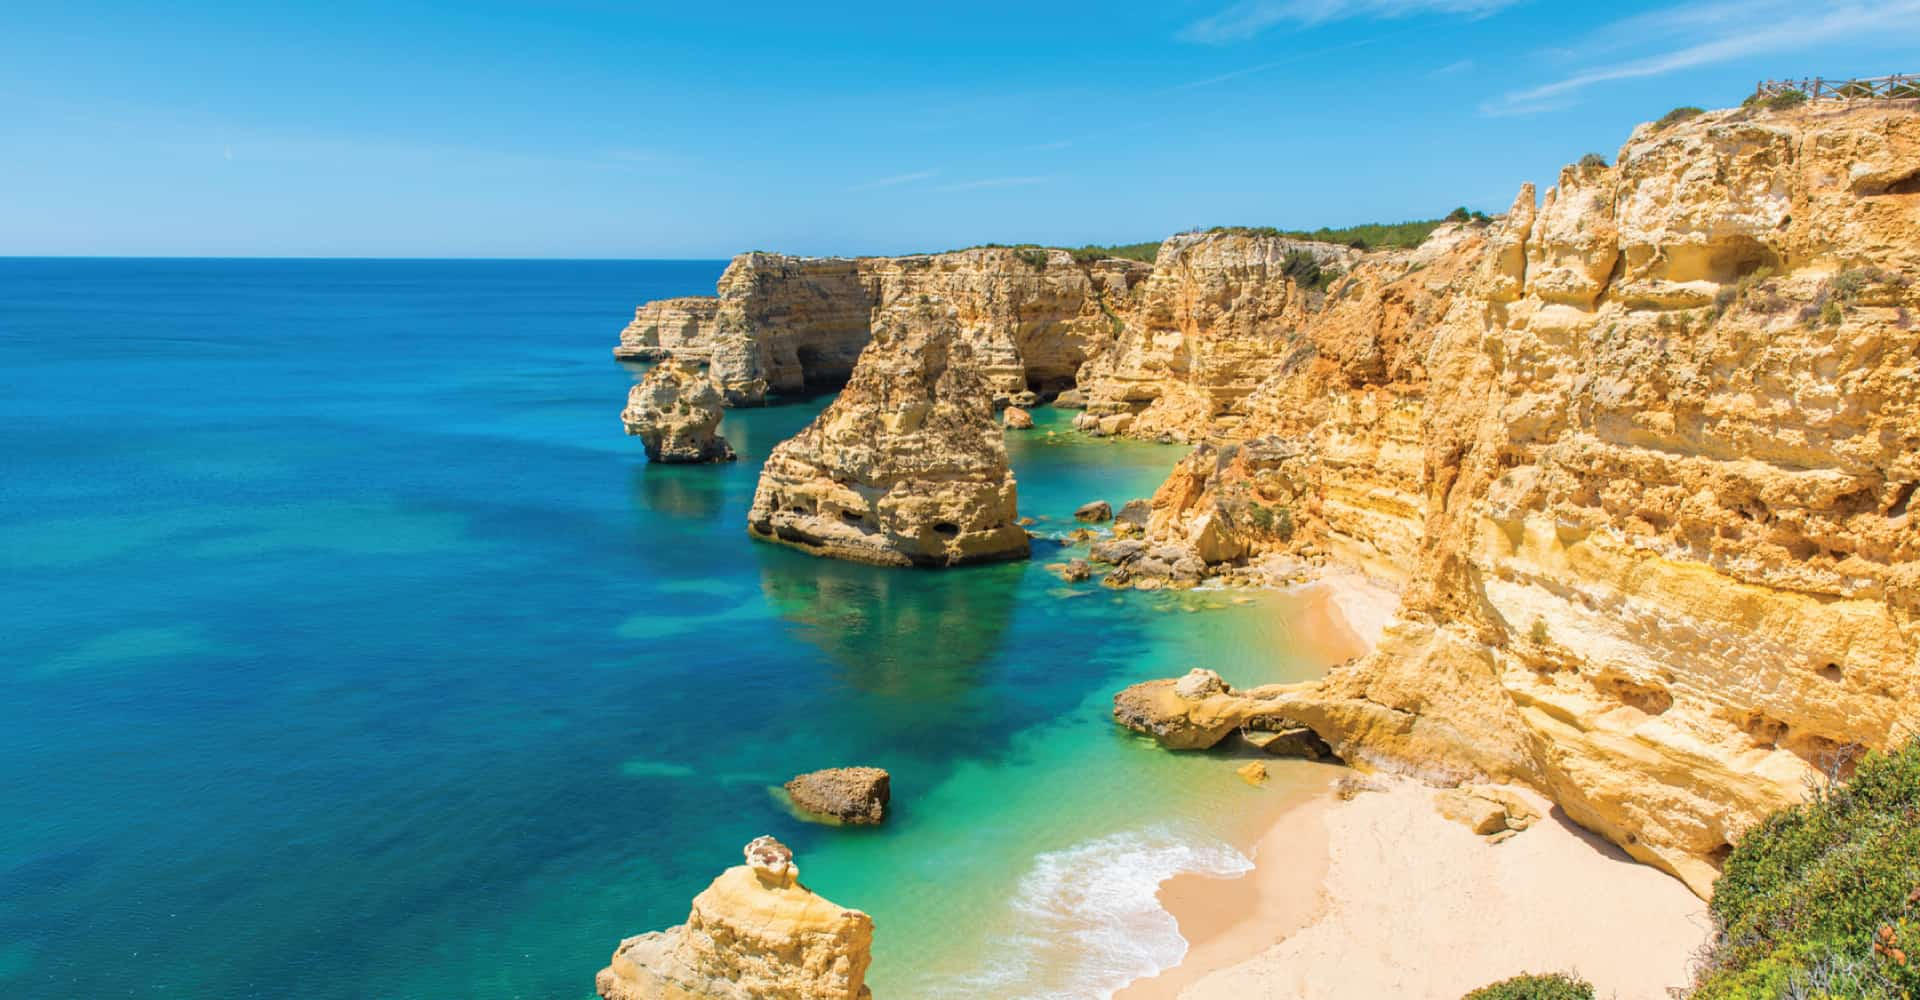 Tivoli Hotels In The Algarve Hotels In Algarve Tivoli Hotels And Resorts In Algarve